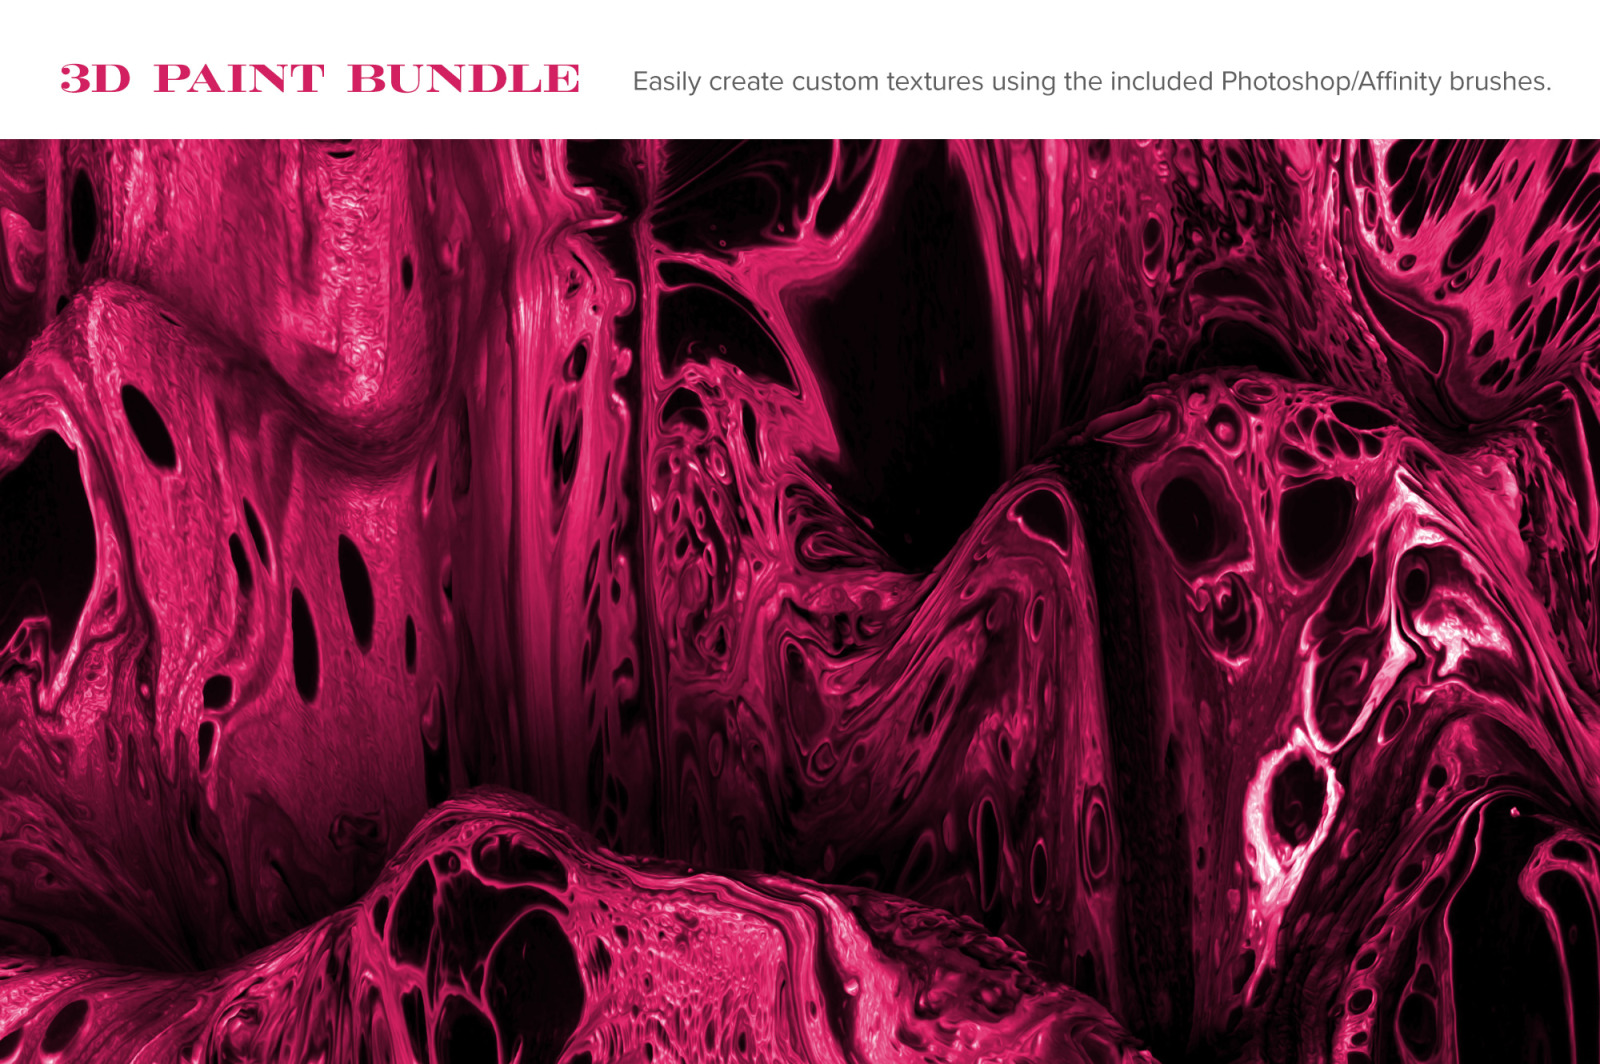 3D Paint Bundle: 60 Experimental Textures